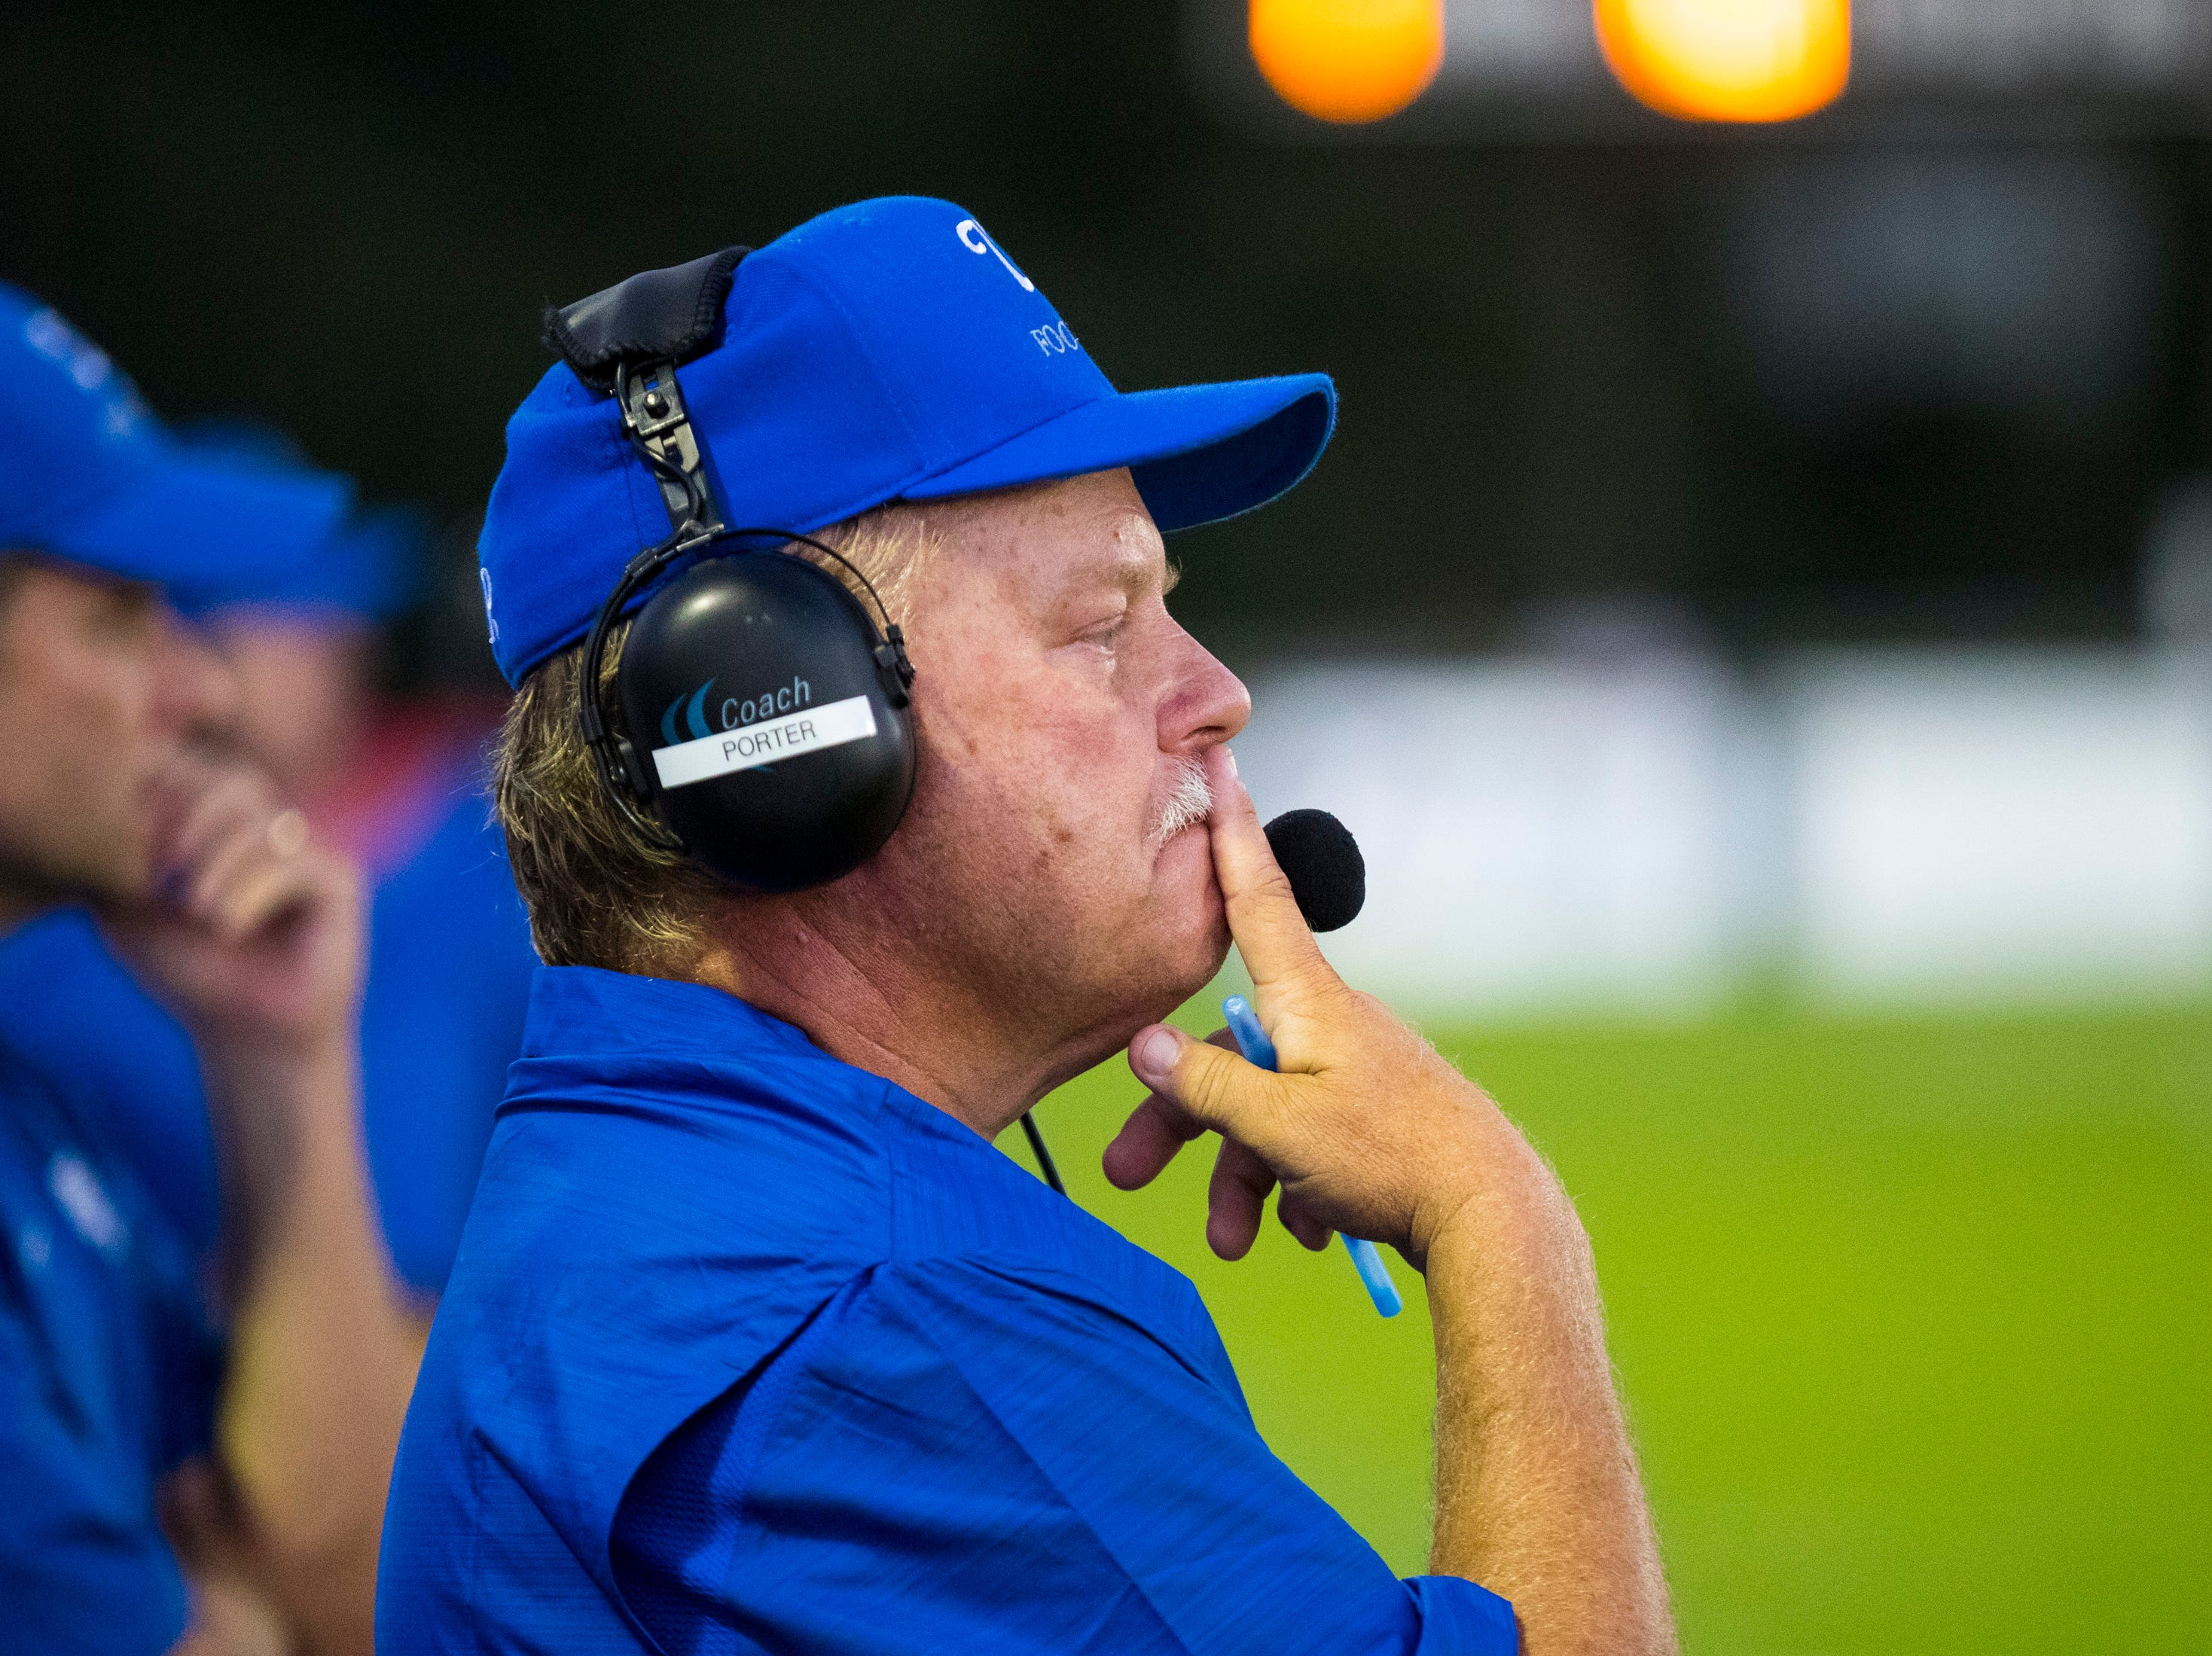 White House's head coach Jeff Porter during Springfield's game against White House at Springfield High School in Springfield on Friday, Sept. 14, 2018.